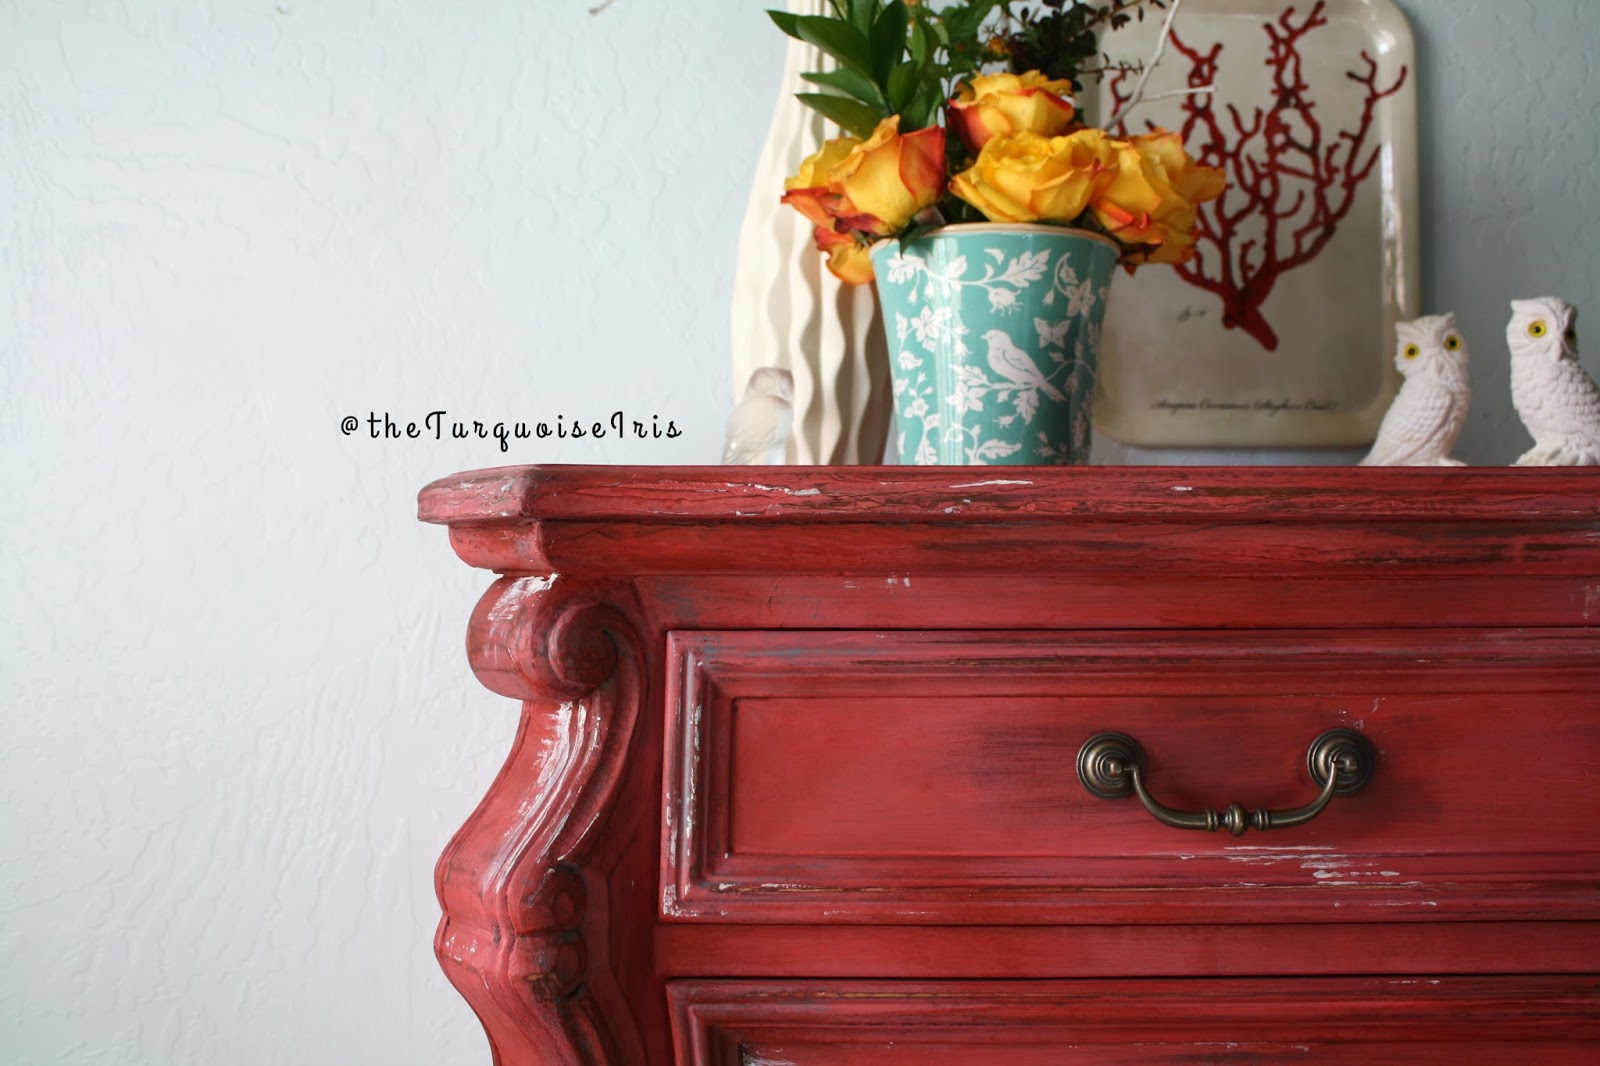 furniture curves for days here with this coral red chest furniture